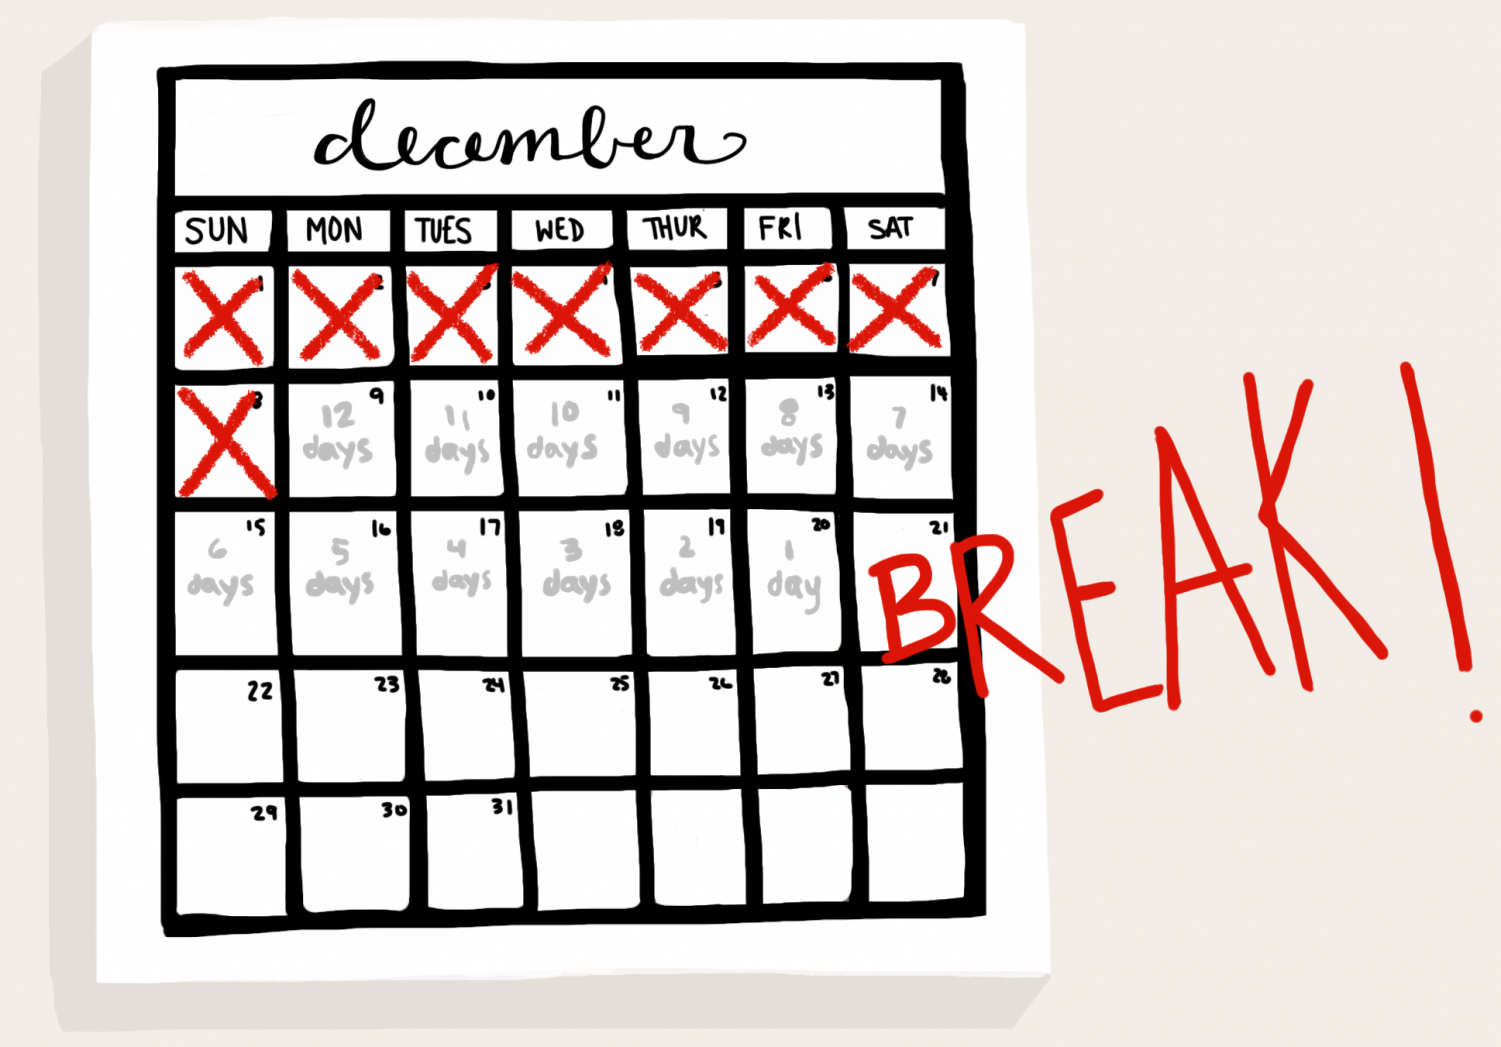 Cartoonist Jordyn Savard feels the return from Thanksgiving break seems to be nothing but a countdown to the next vacation: winter break.